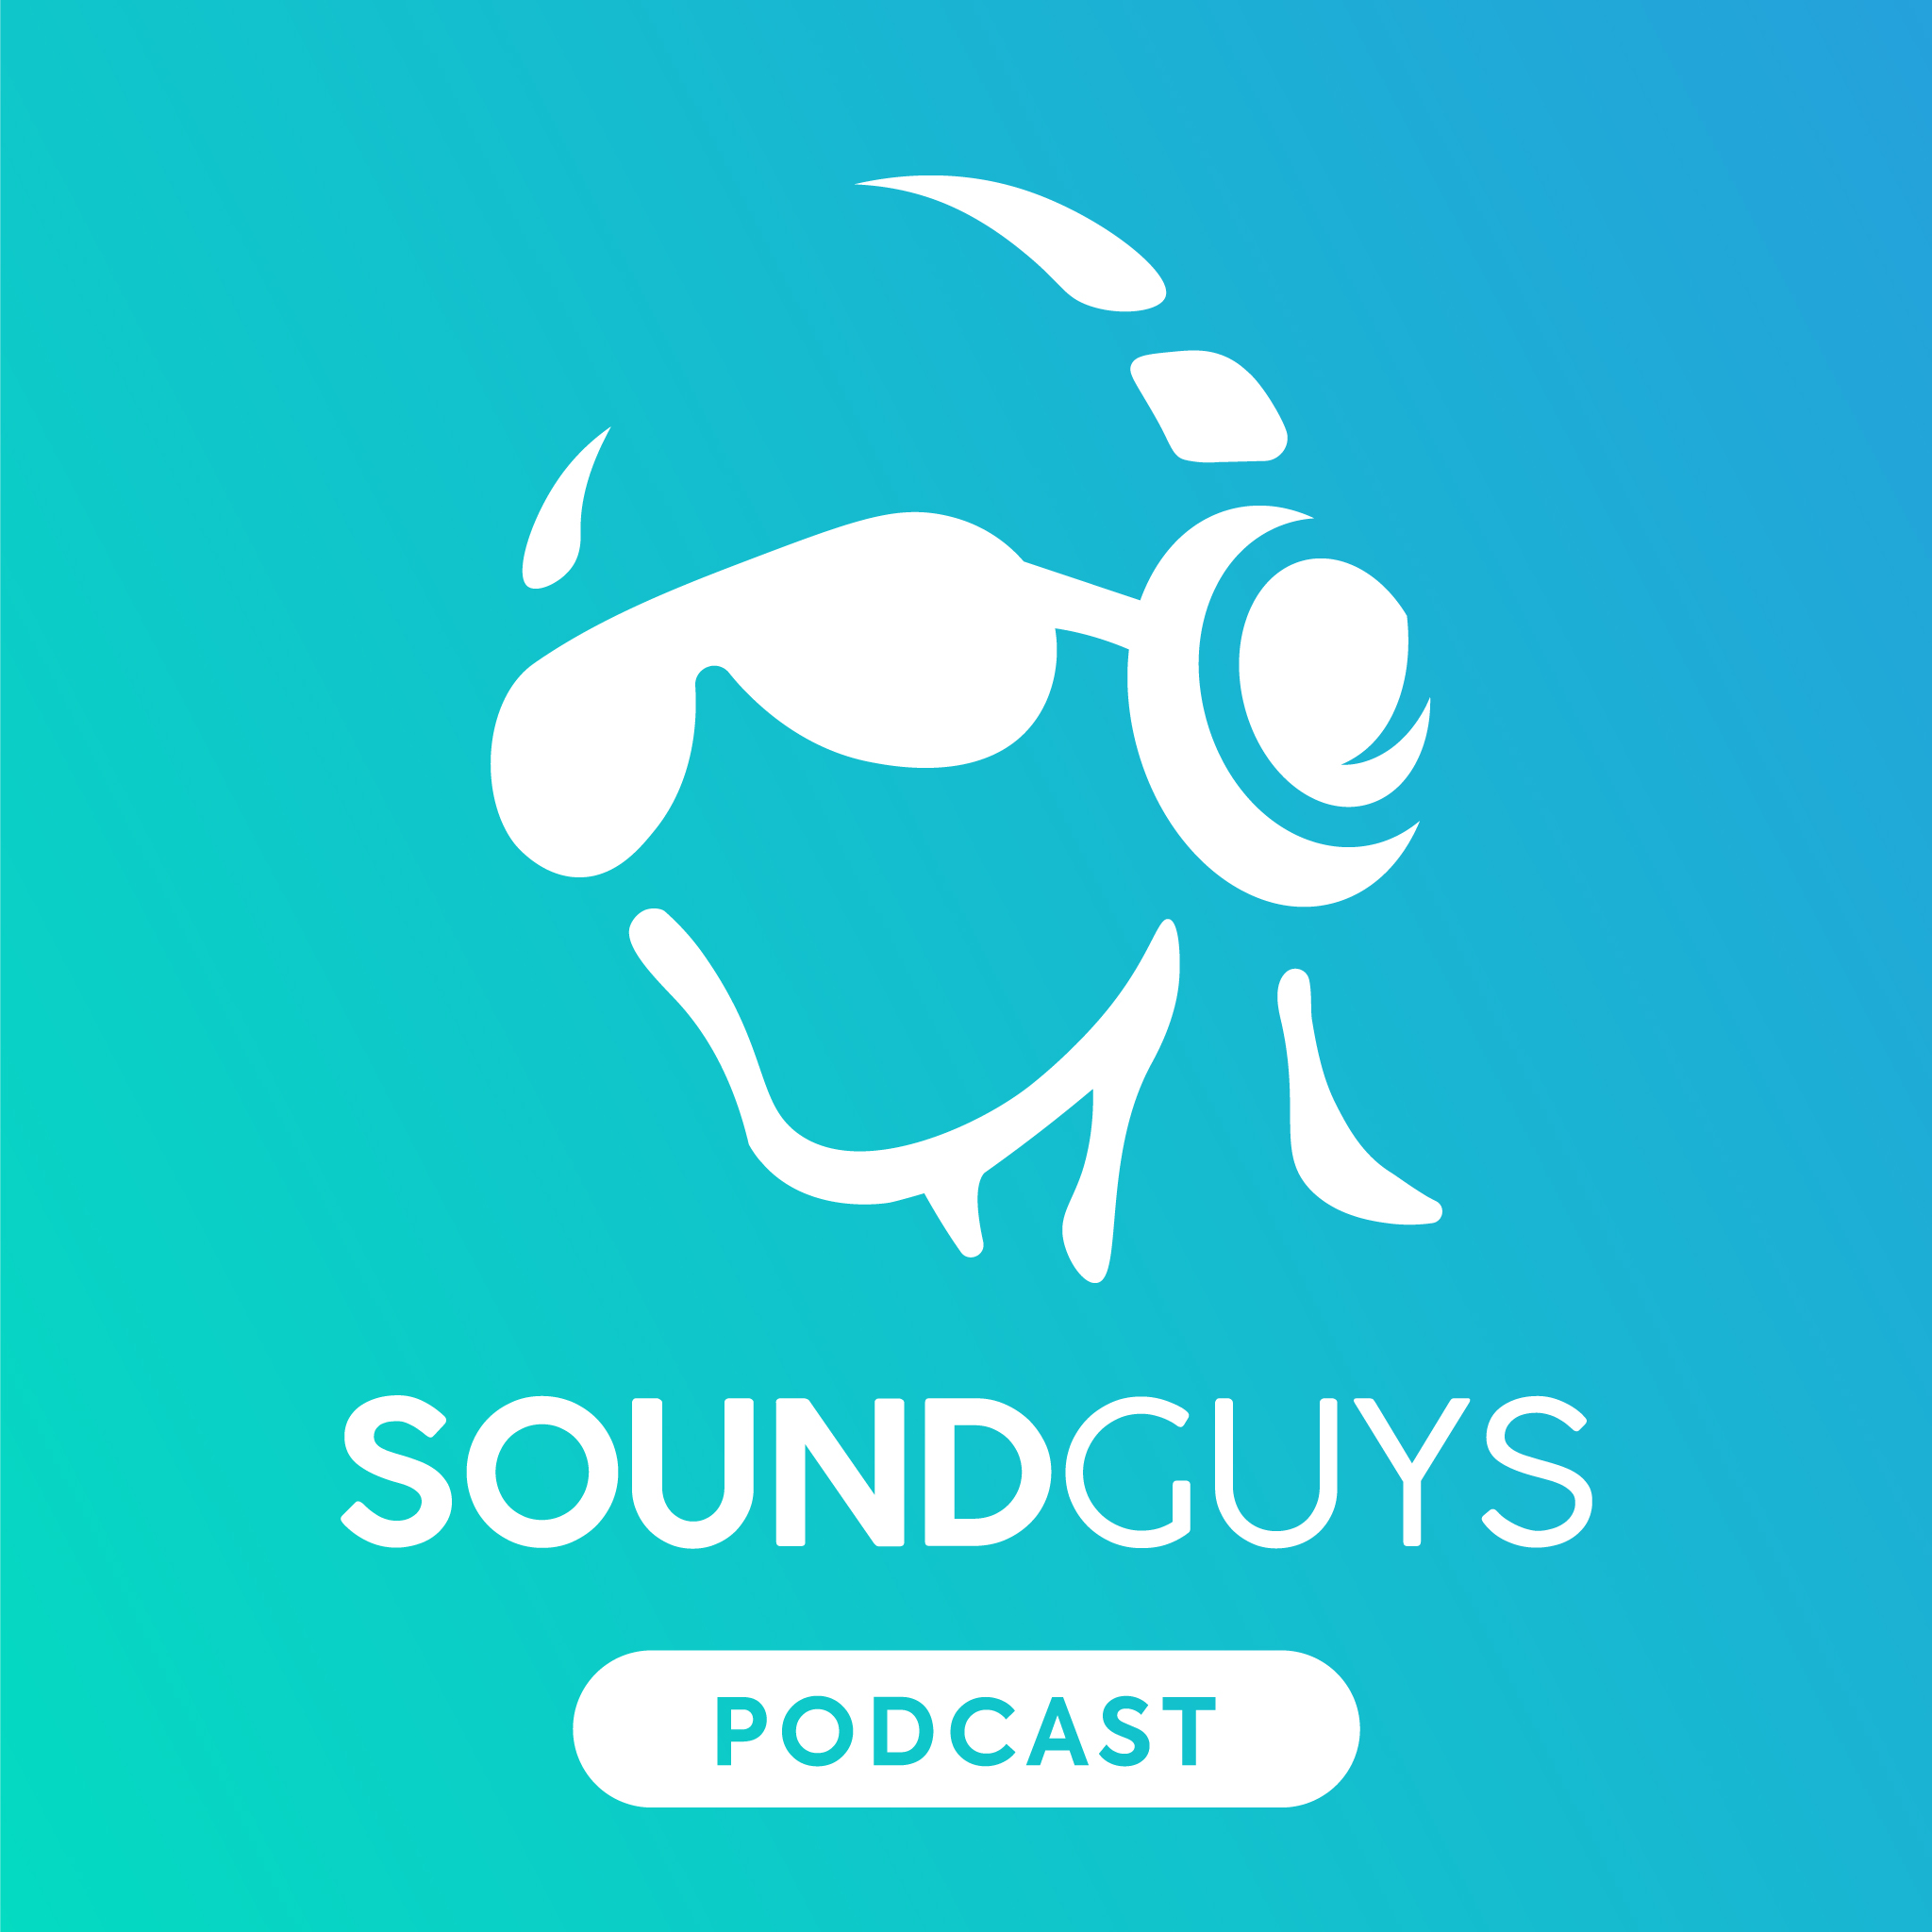 SoundGuys Podcast show art